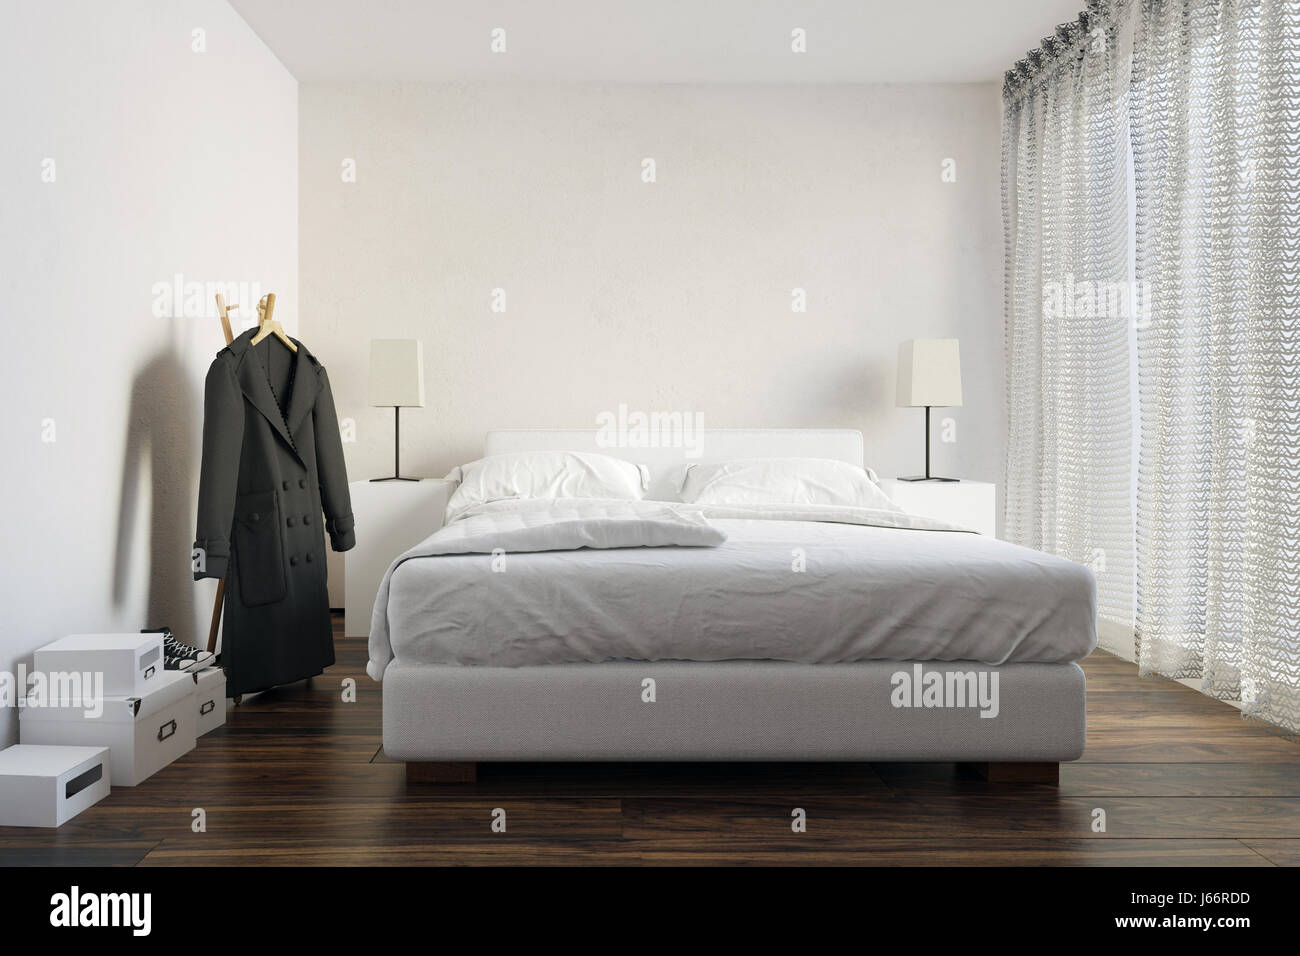 Cabinets clothes stock photos cabinets clothes stock for White double divan bed